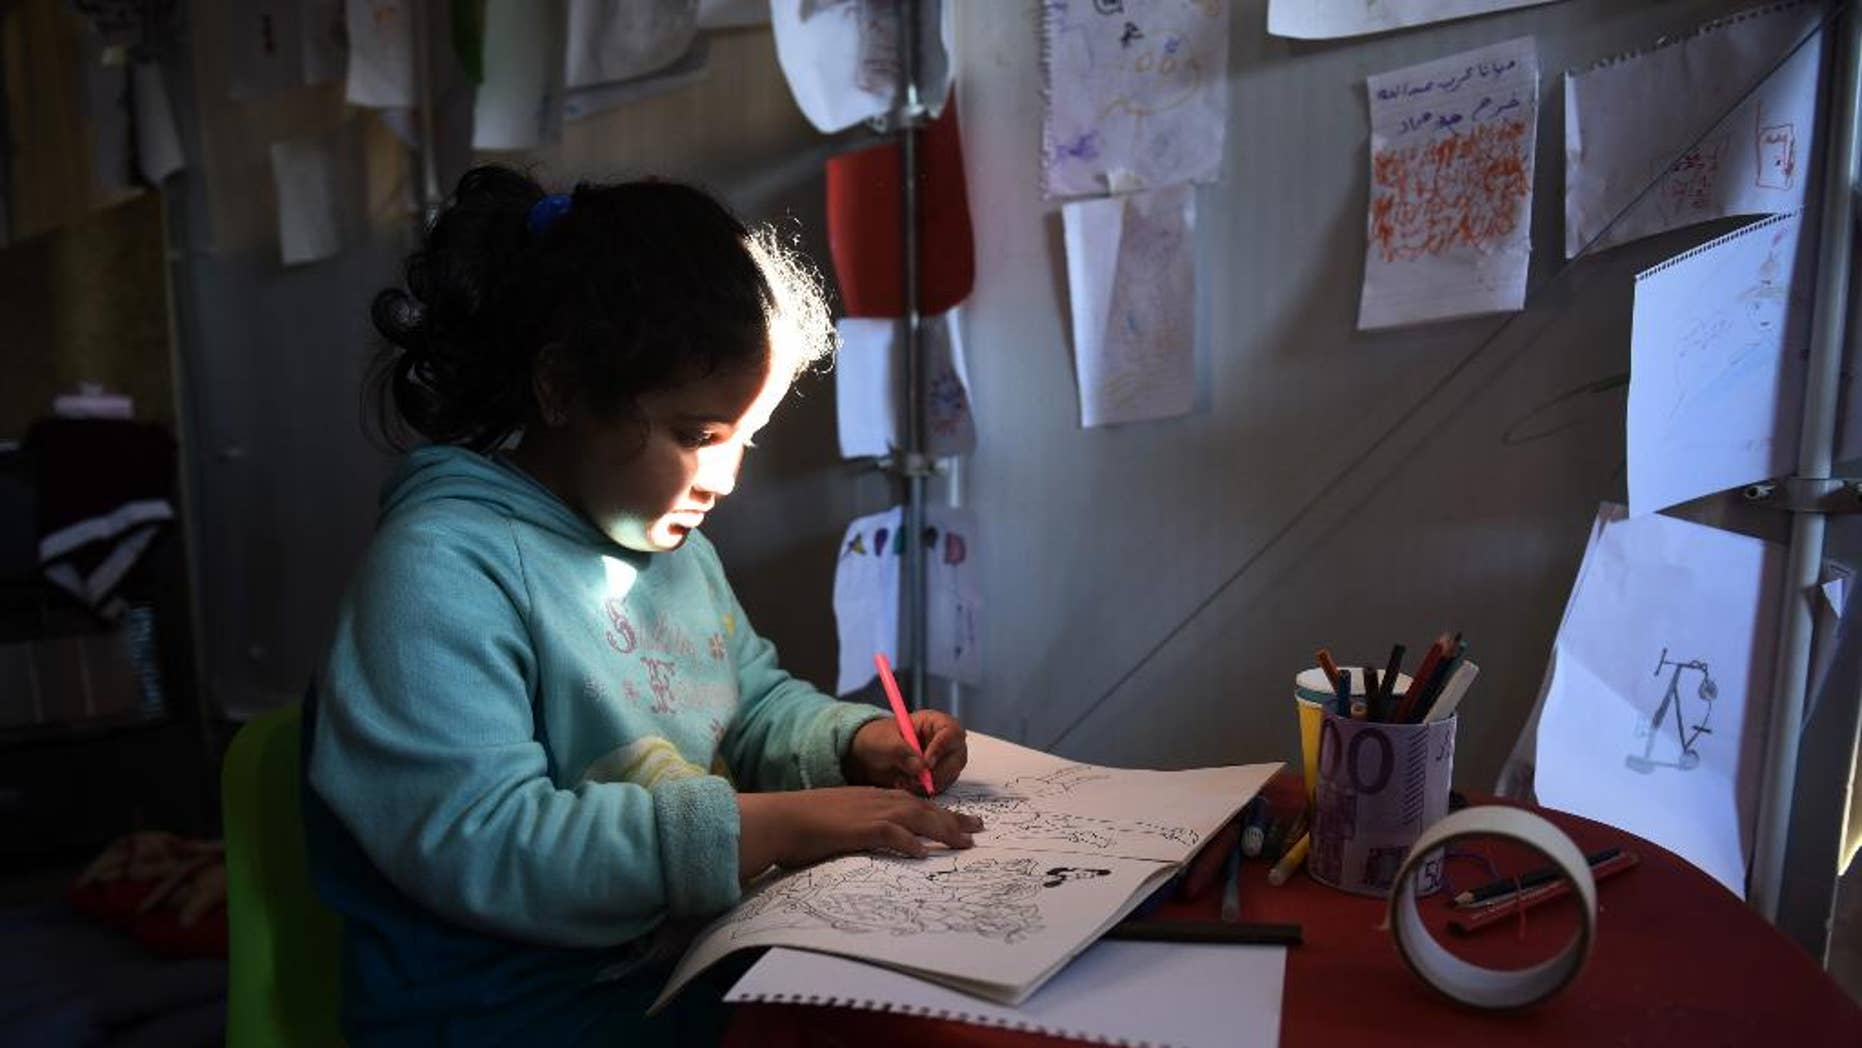 A Syrian girl draws  at a refugee camp near the northern Greek village of Idomeni near to southern Macedonia, Monday, Nov. 9, 2015. Migrants are facing long waits to cross Greece's border with Macedonia after a four-day ferry strike ended and eased a bottleneck on the country's eastern Aegean islands, where the vast majority of people arrive from nearby Turkey. (AP Photo/Giannis Papanikos)